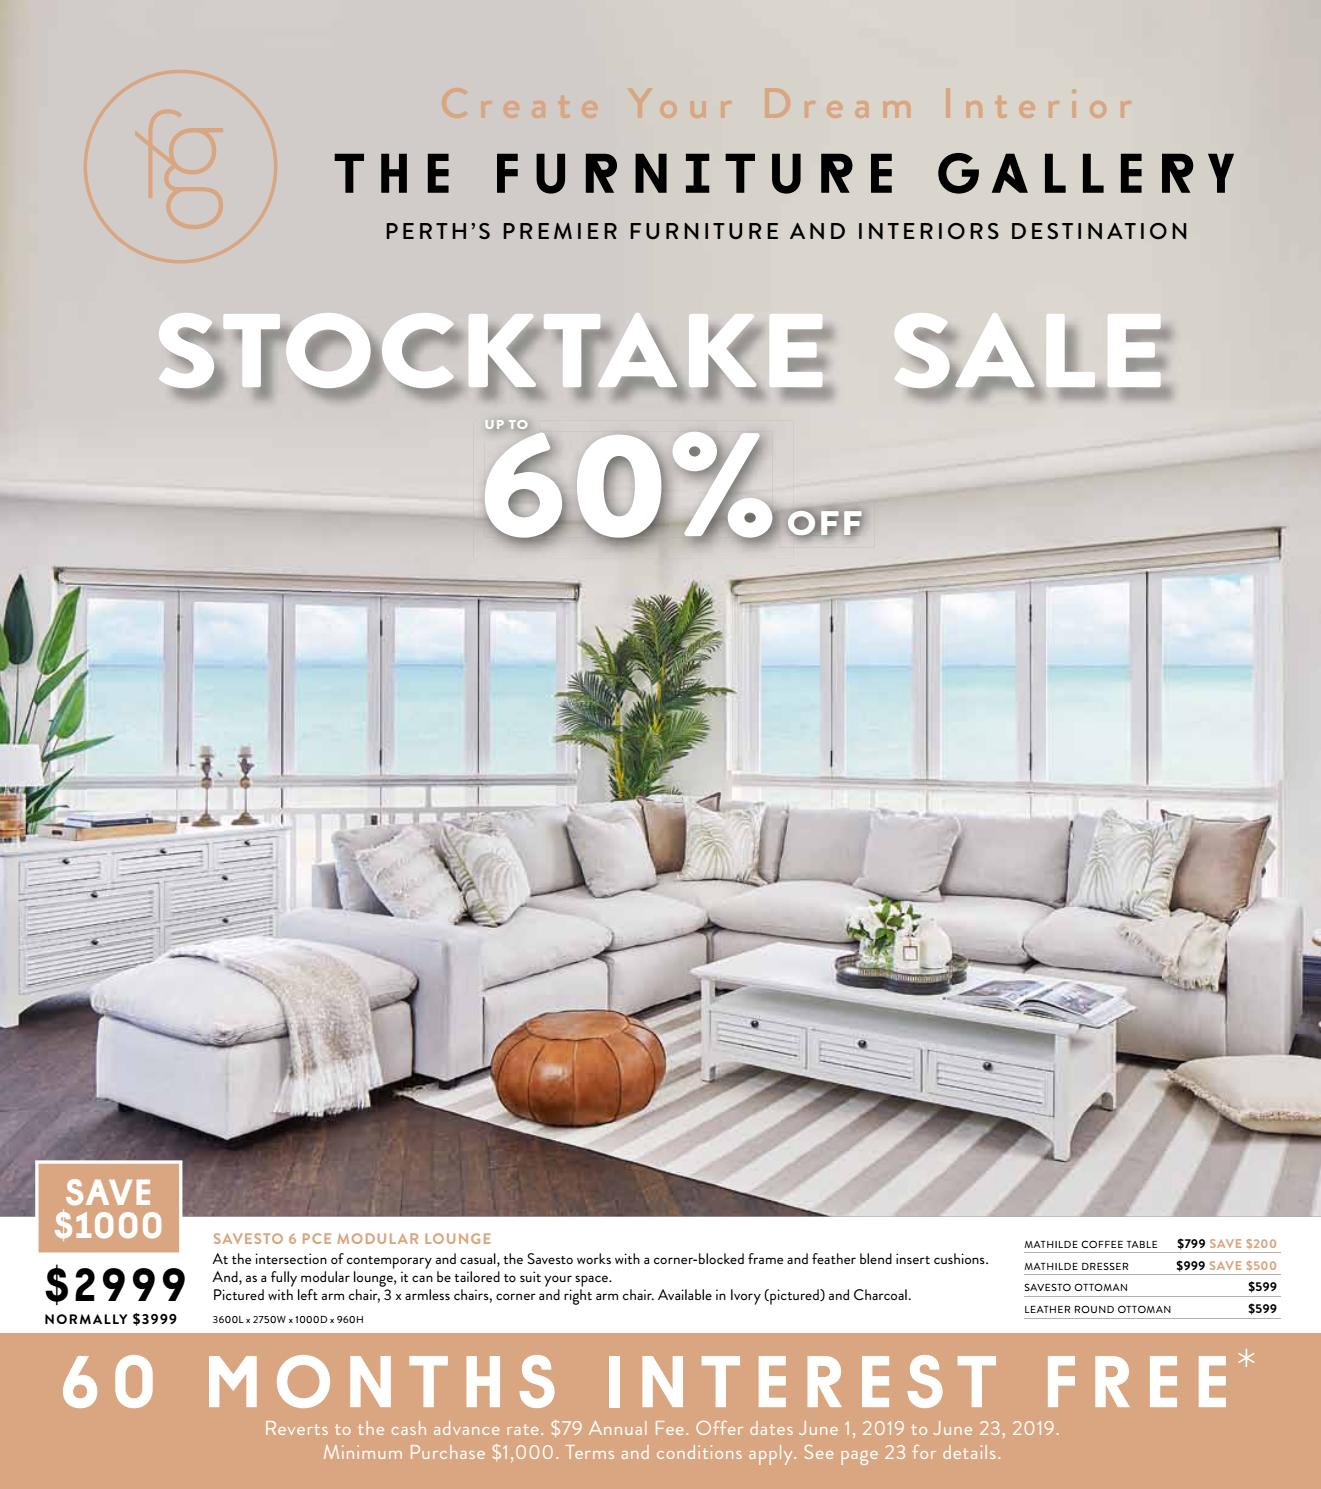 THE FURNITURE GALLERY STOCKTAKE SALE by thefurnituregallery - issuu